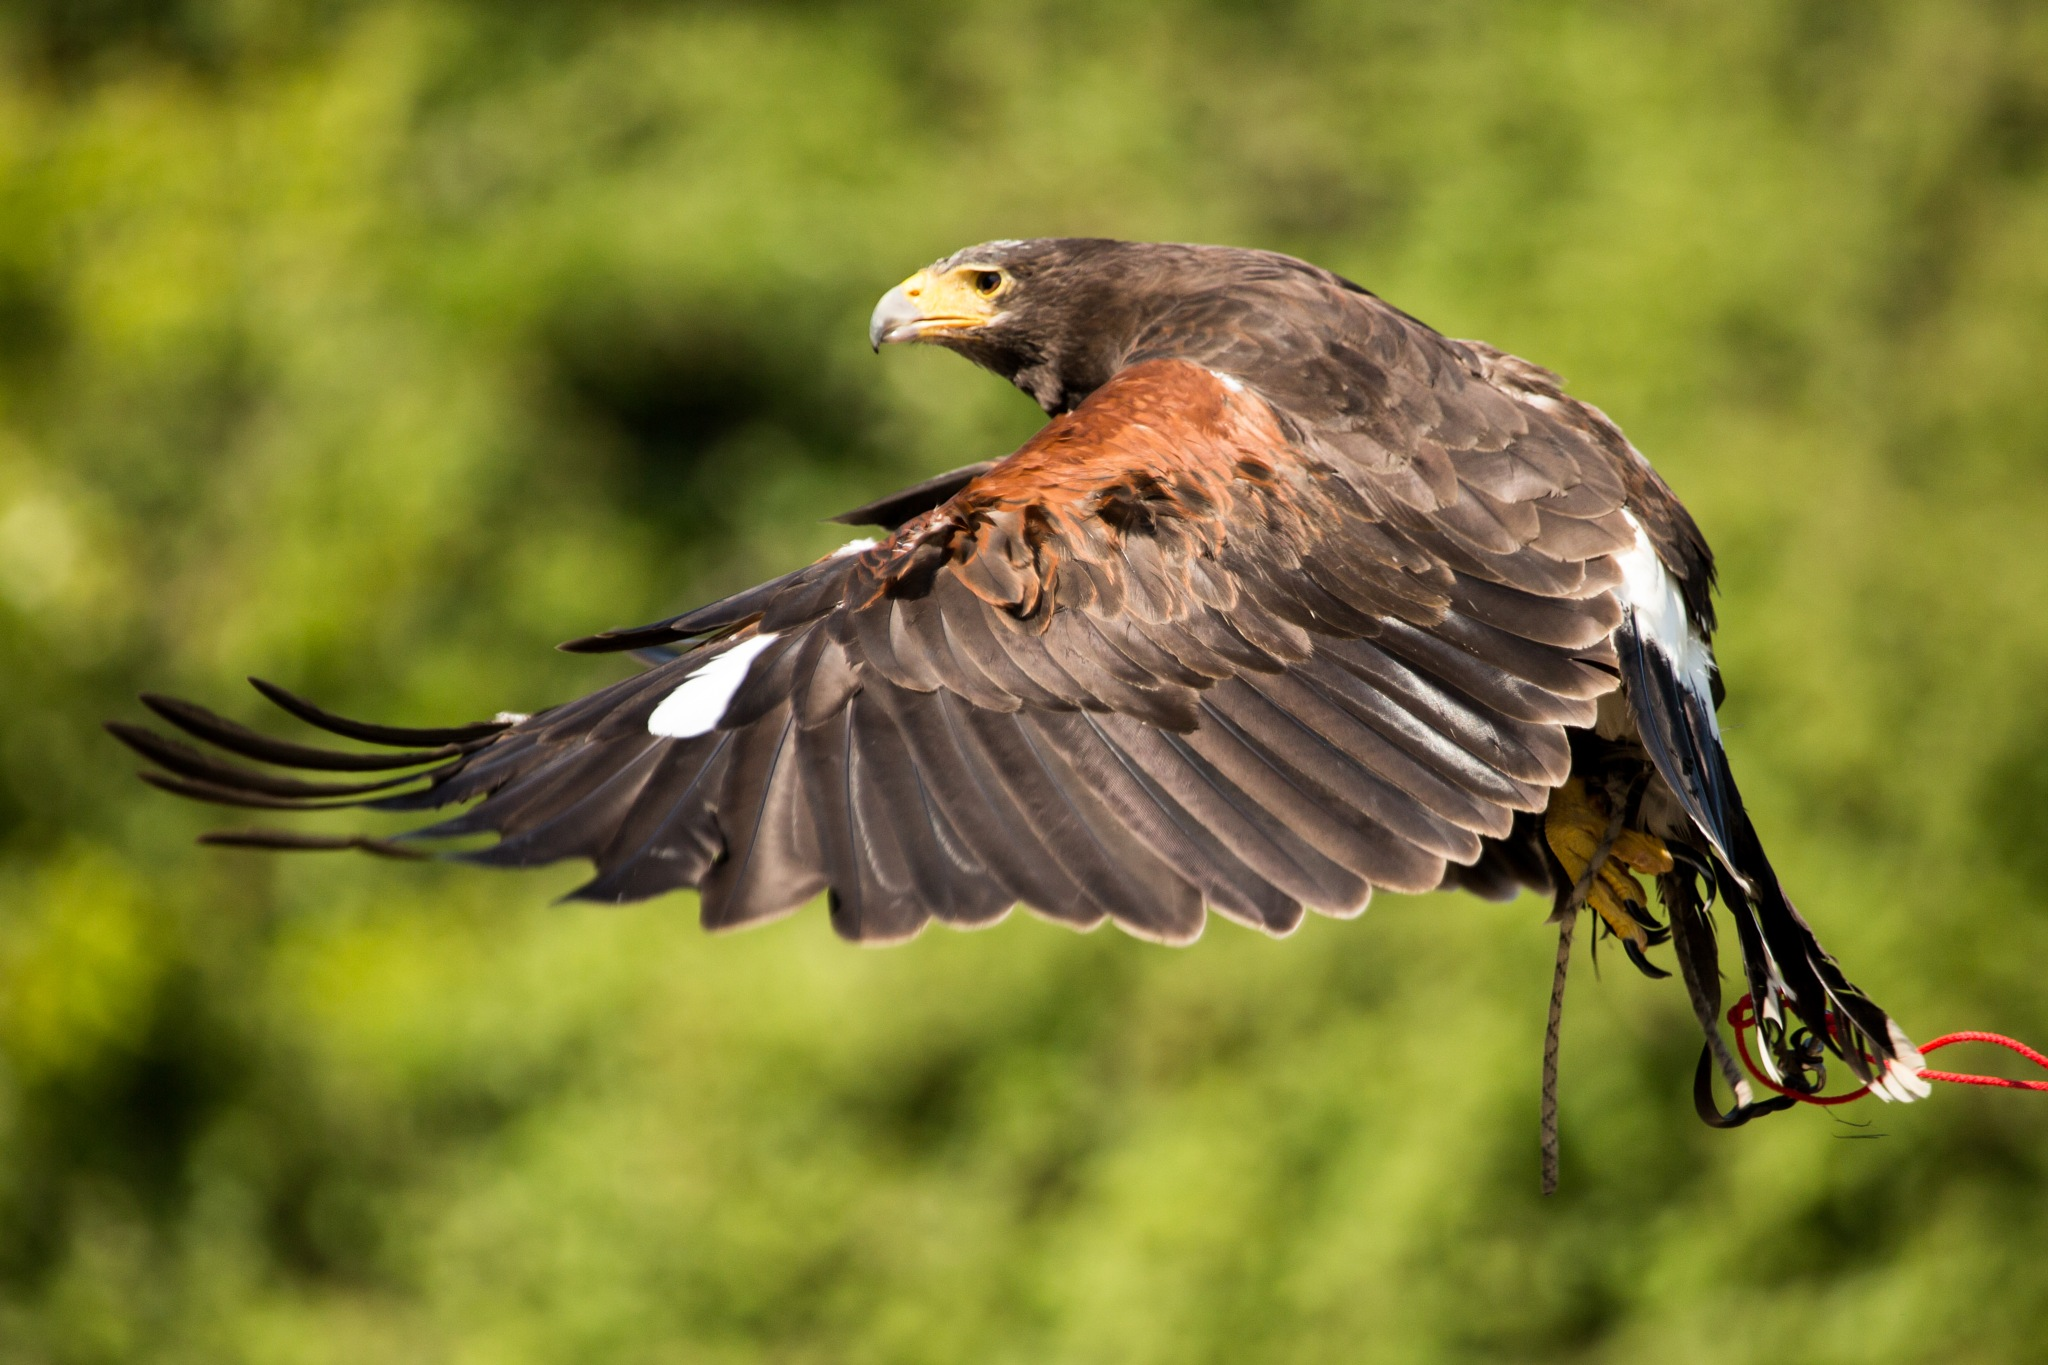 Harris Hawk by Gareth Sawbridge